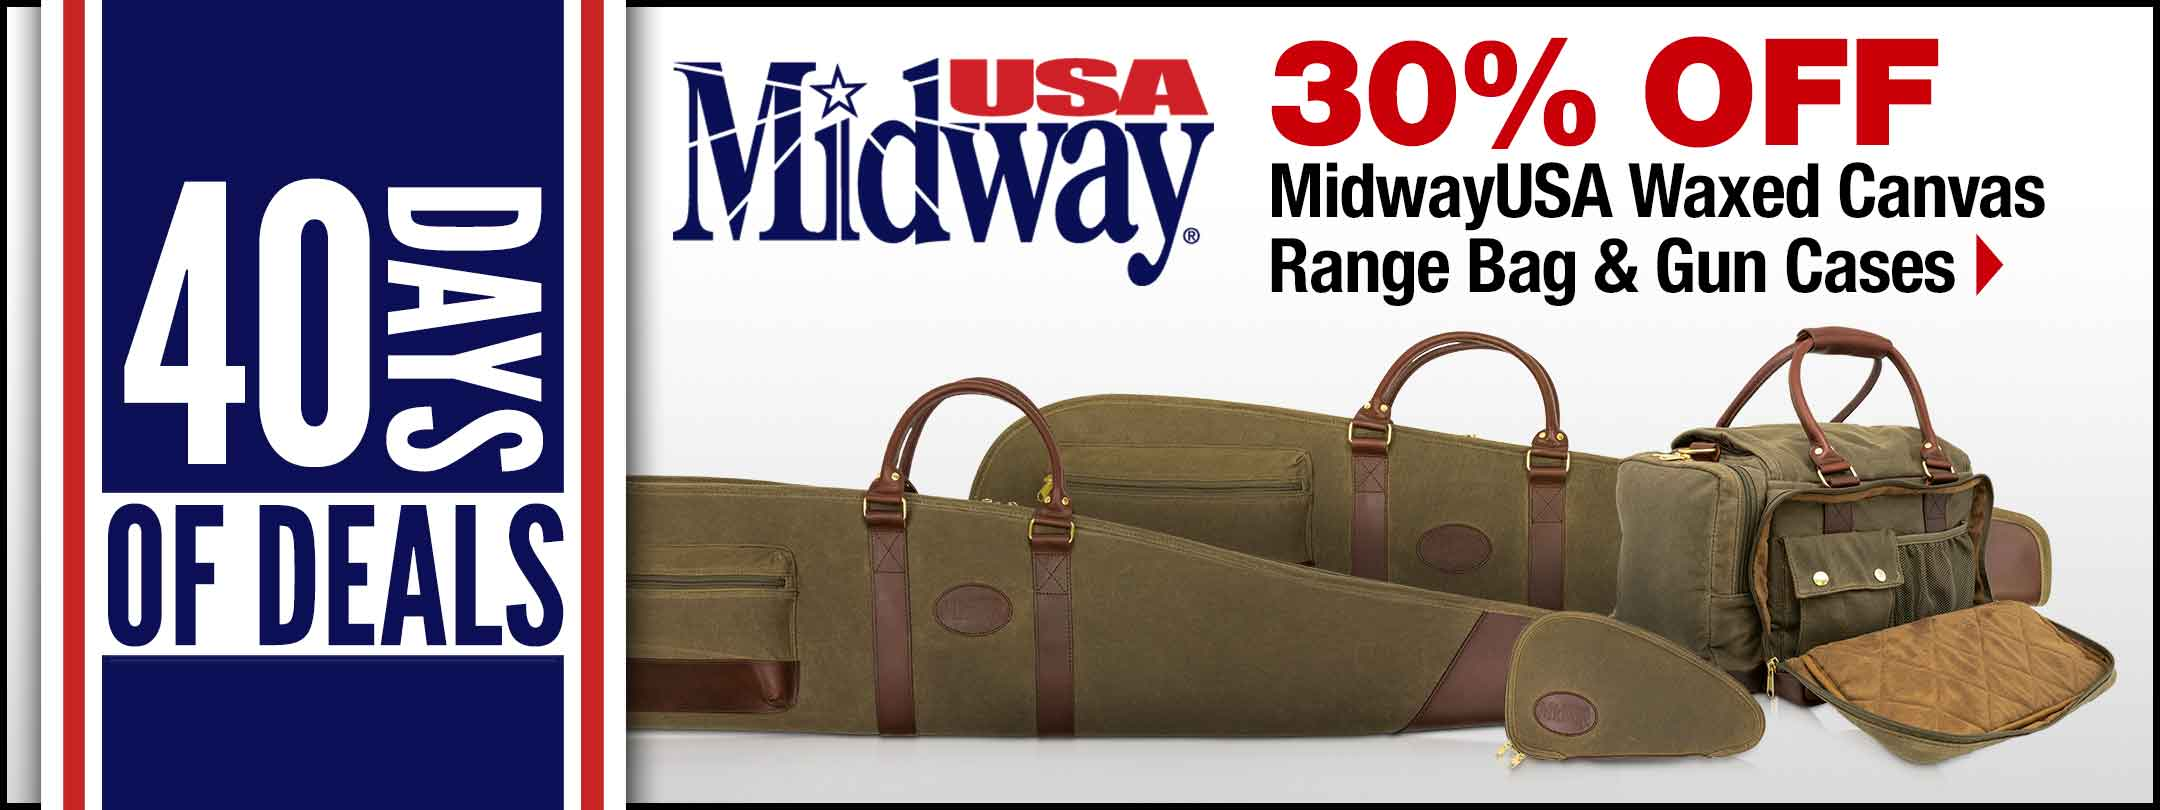 MidwayUSA Waxed Canvas Range Bag & Gun Cases